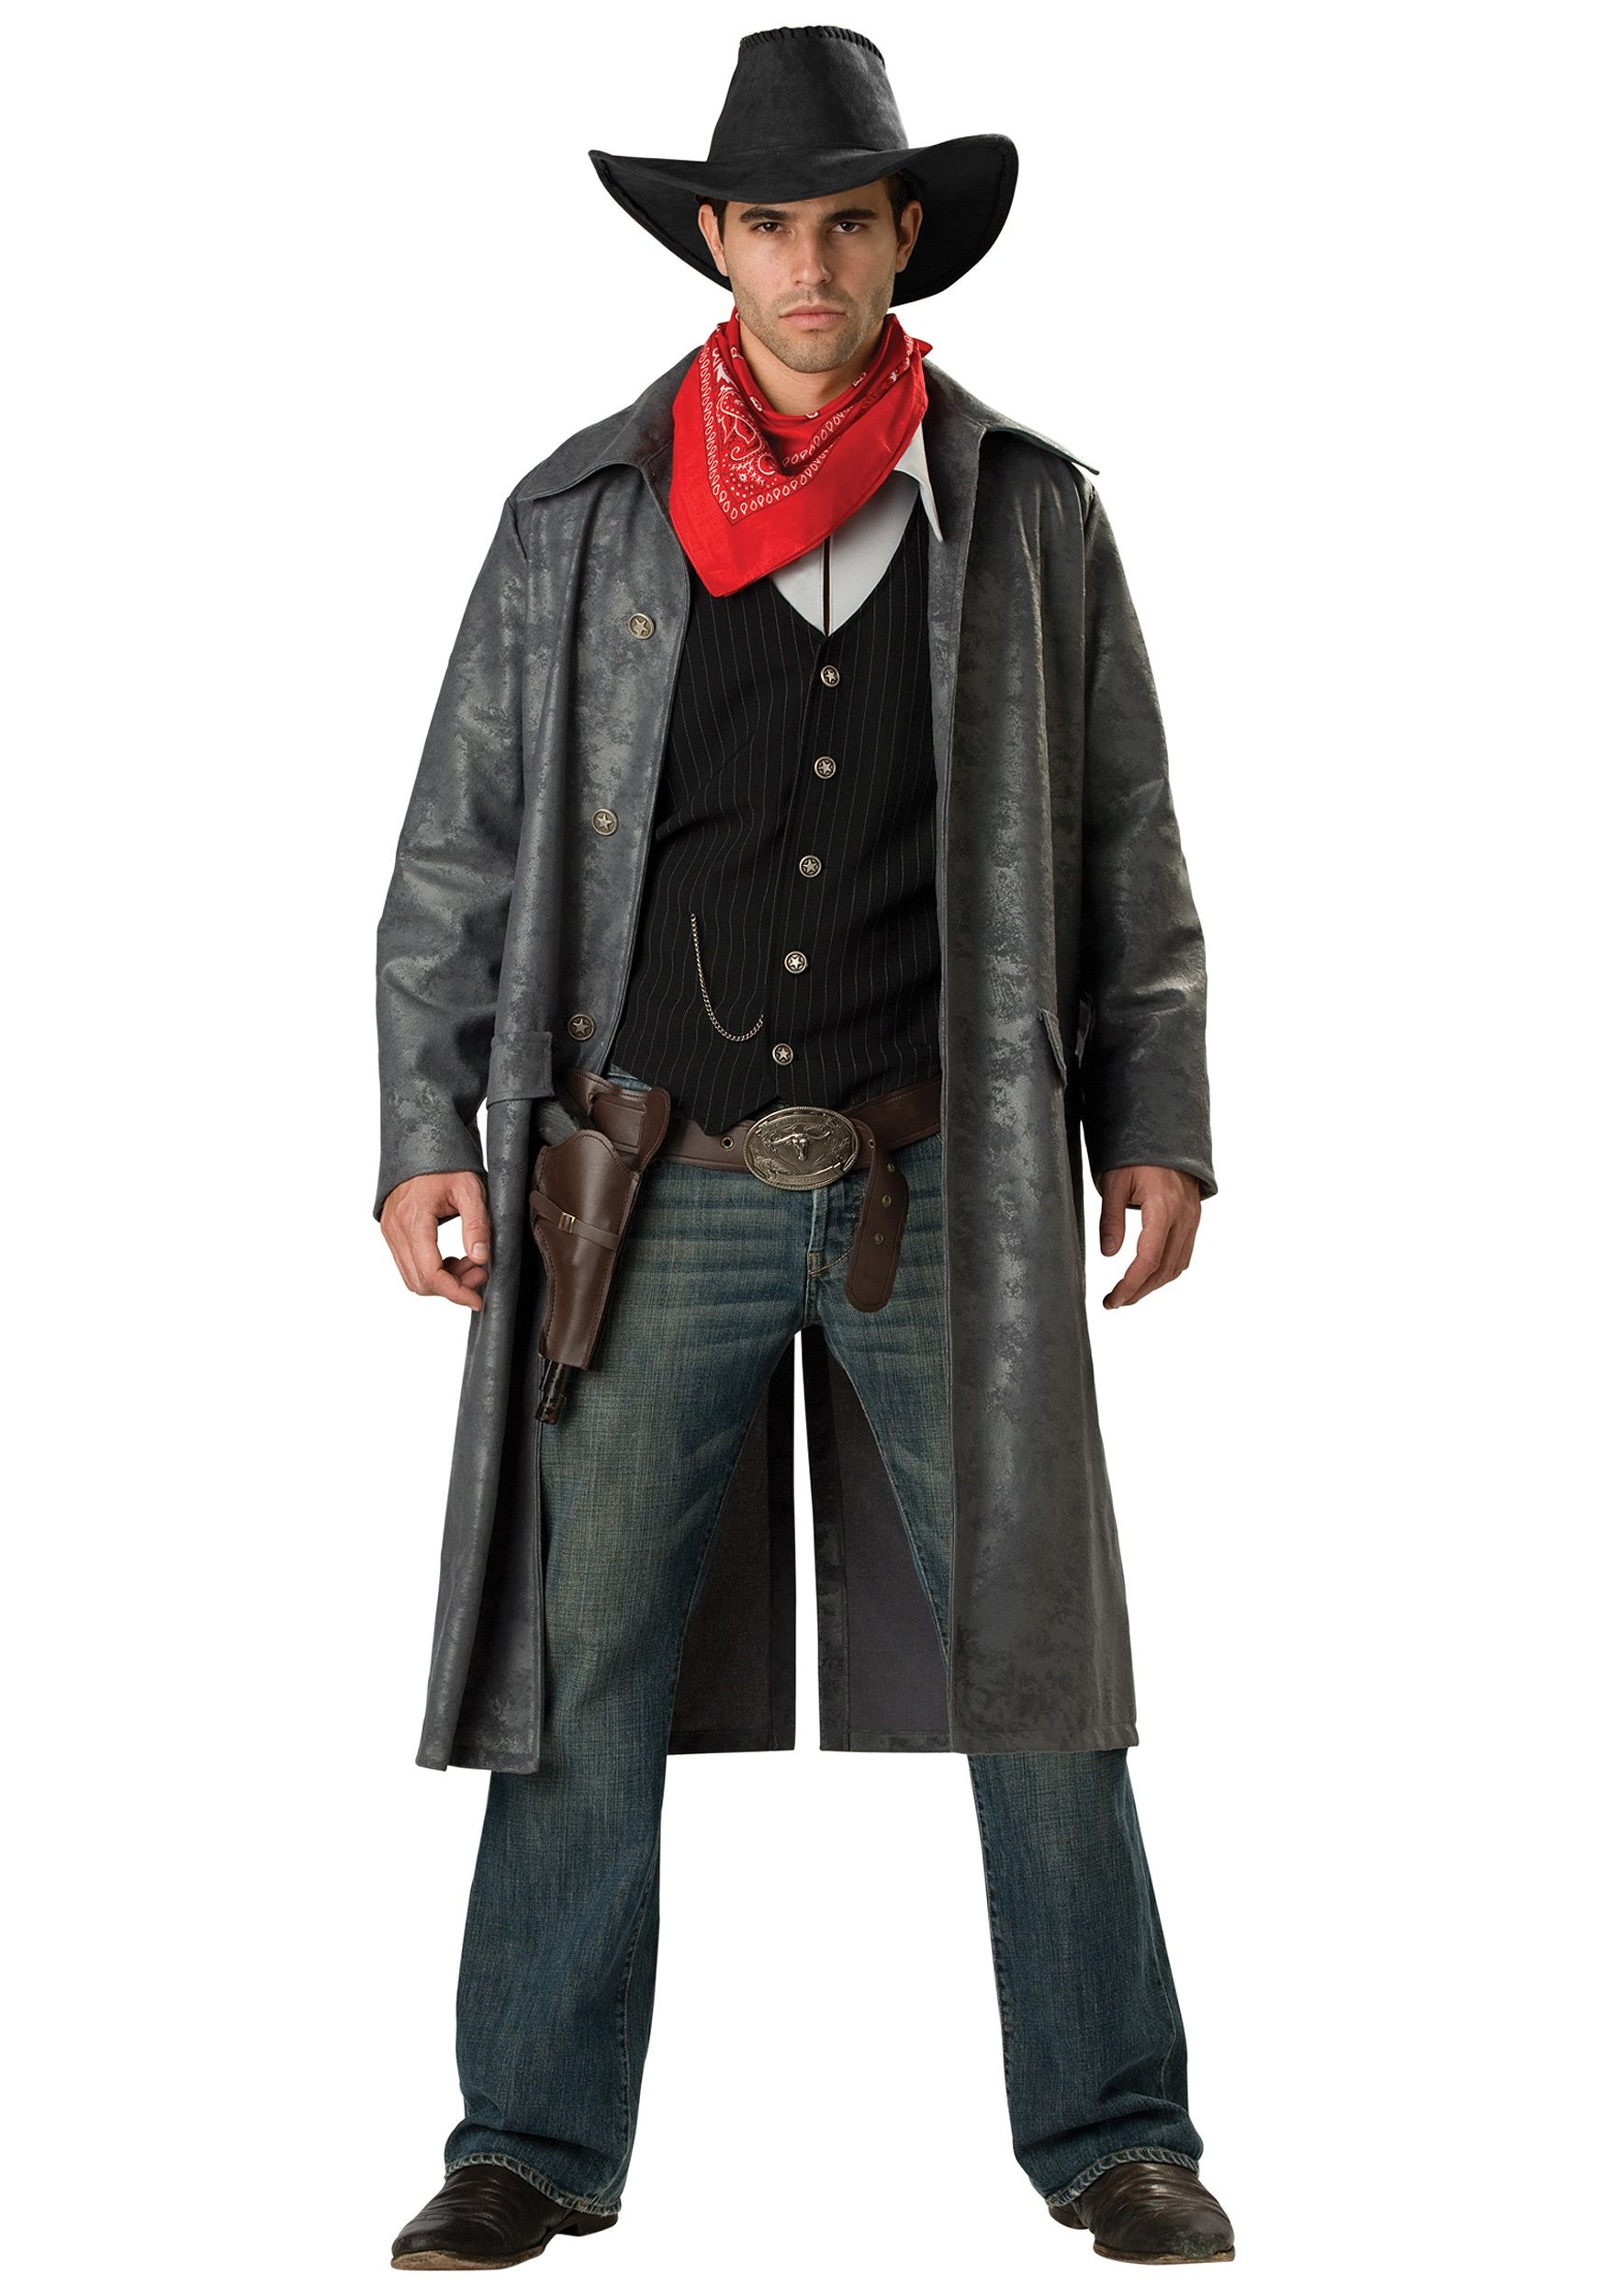 halloween costumes for guys | Wild West Outlaw Costume For Men ...